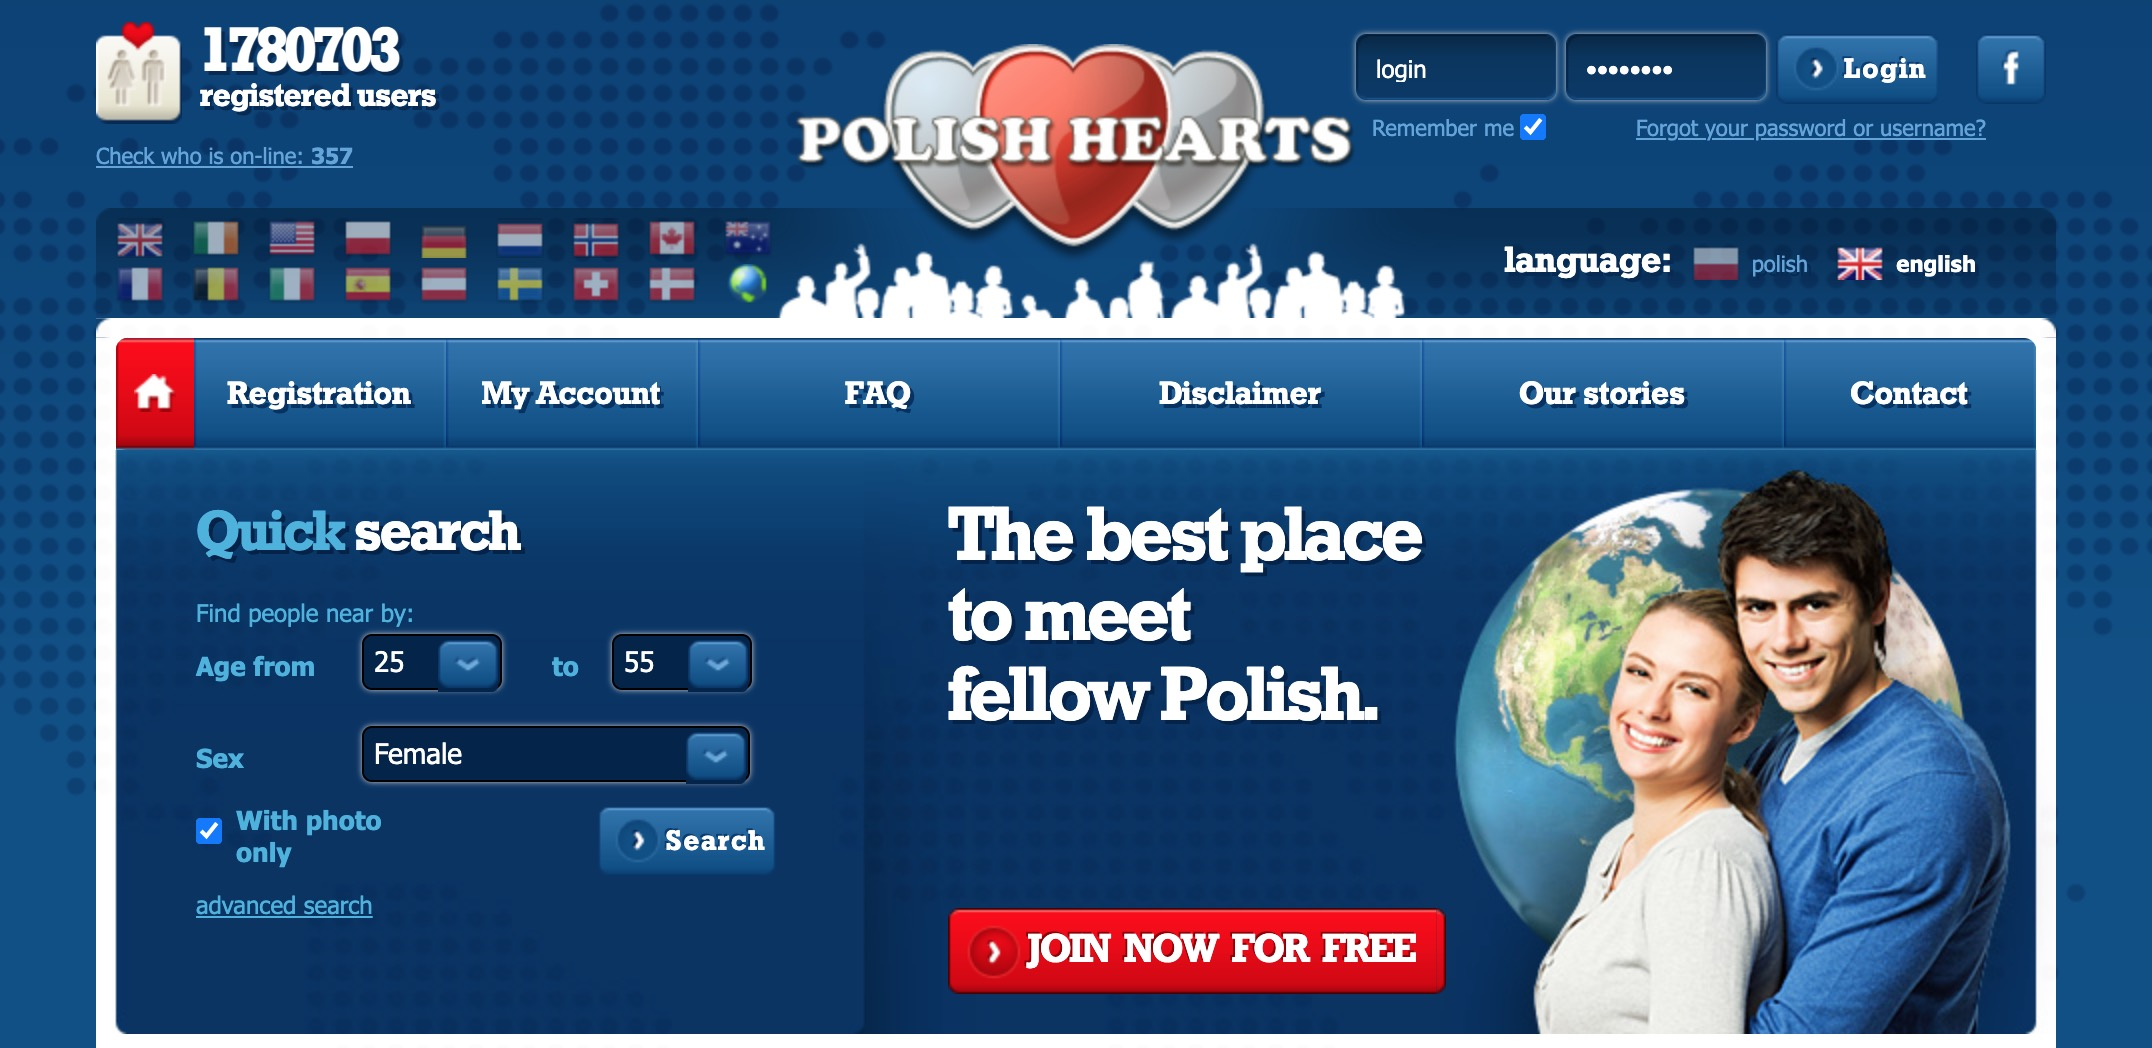 PolishHearts main page